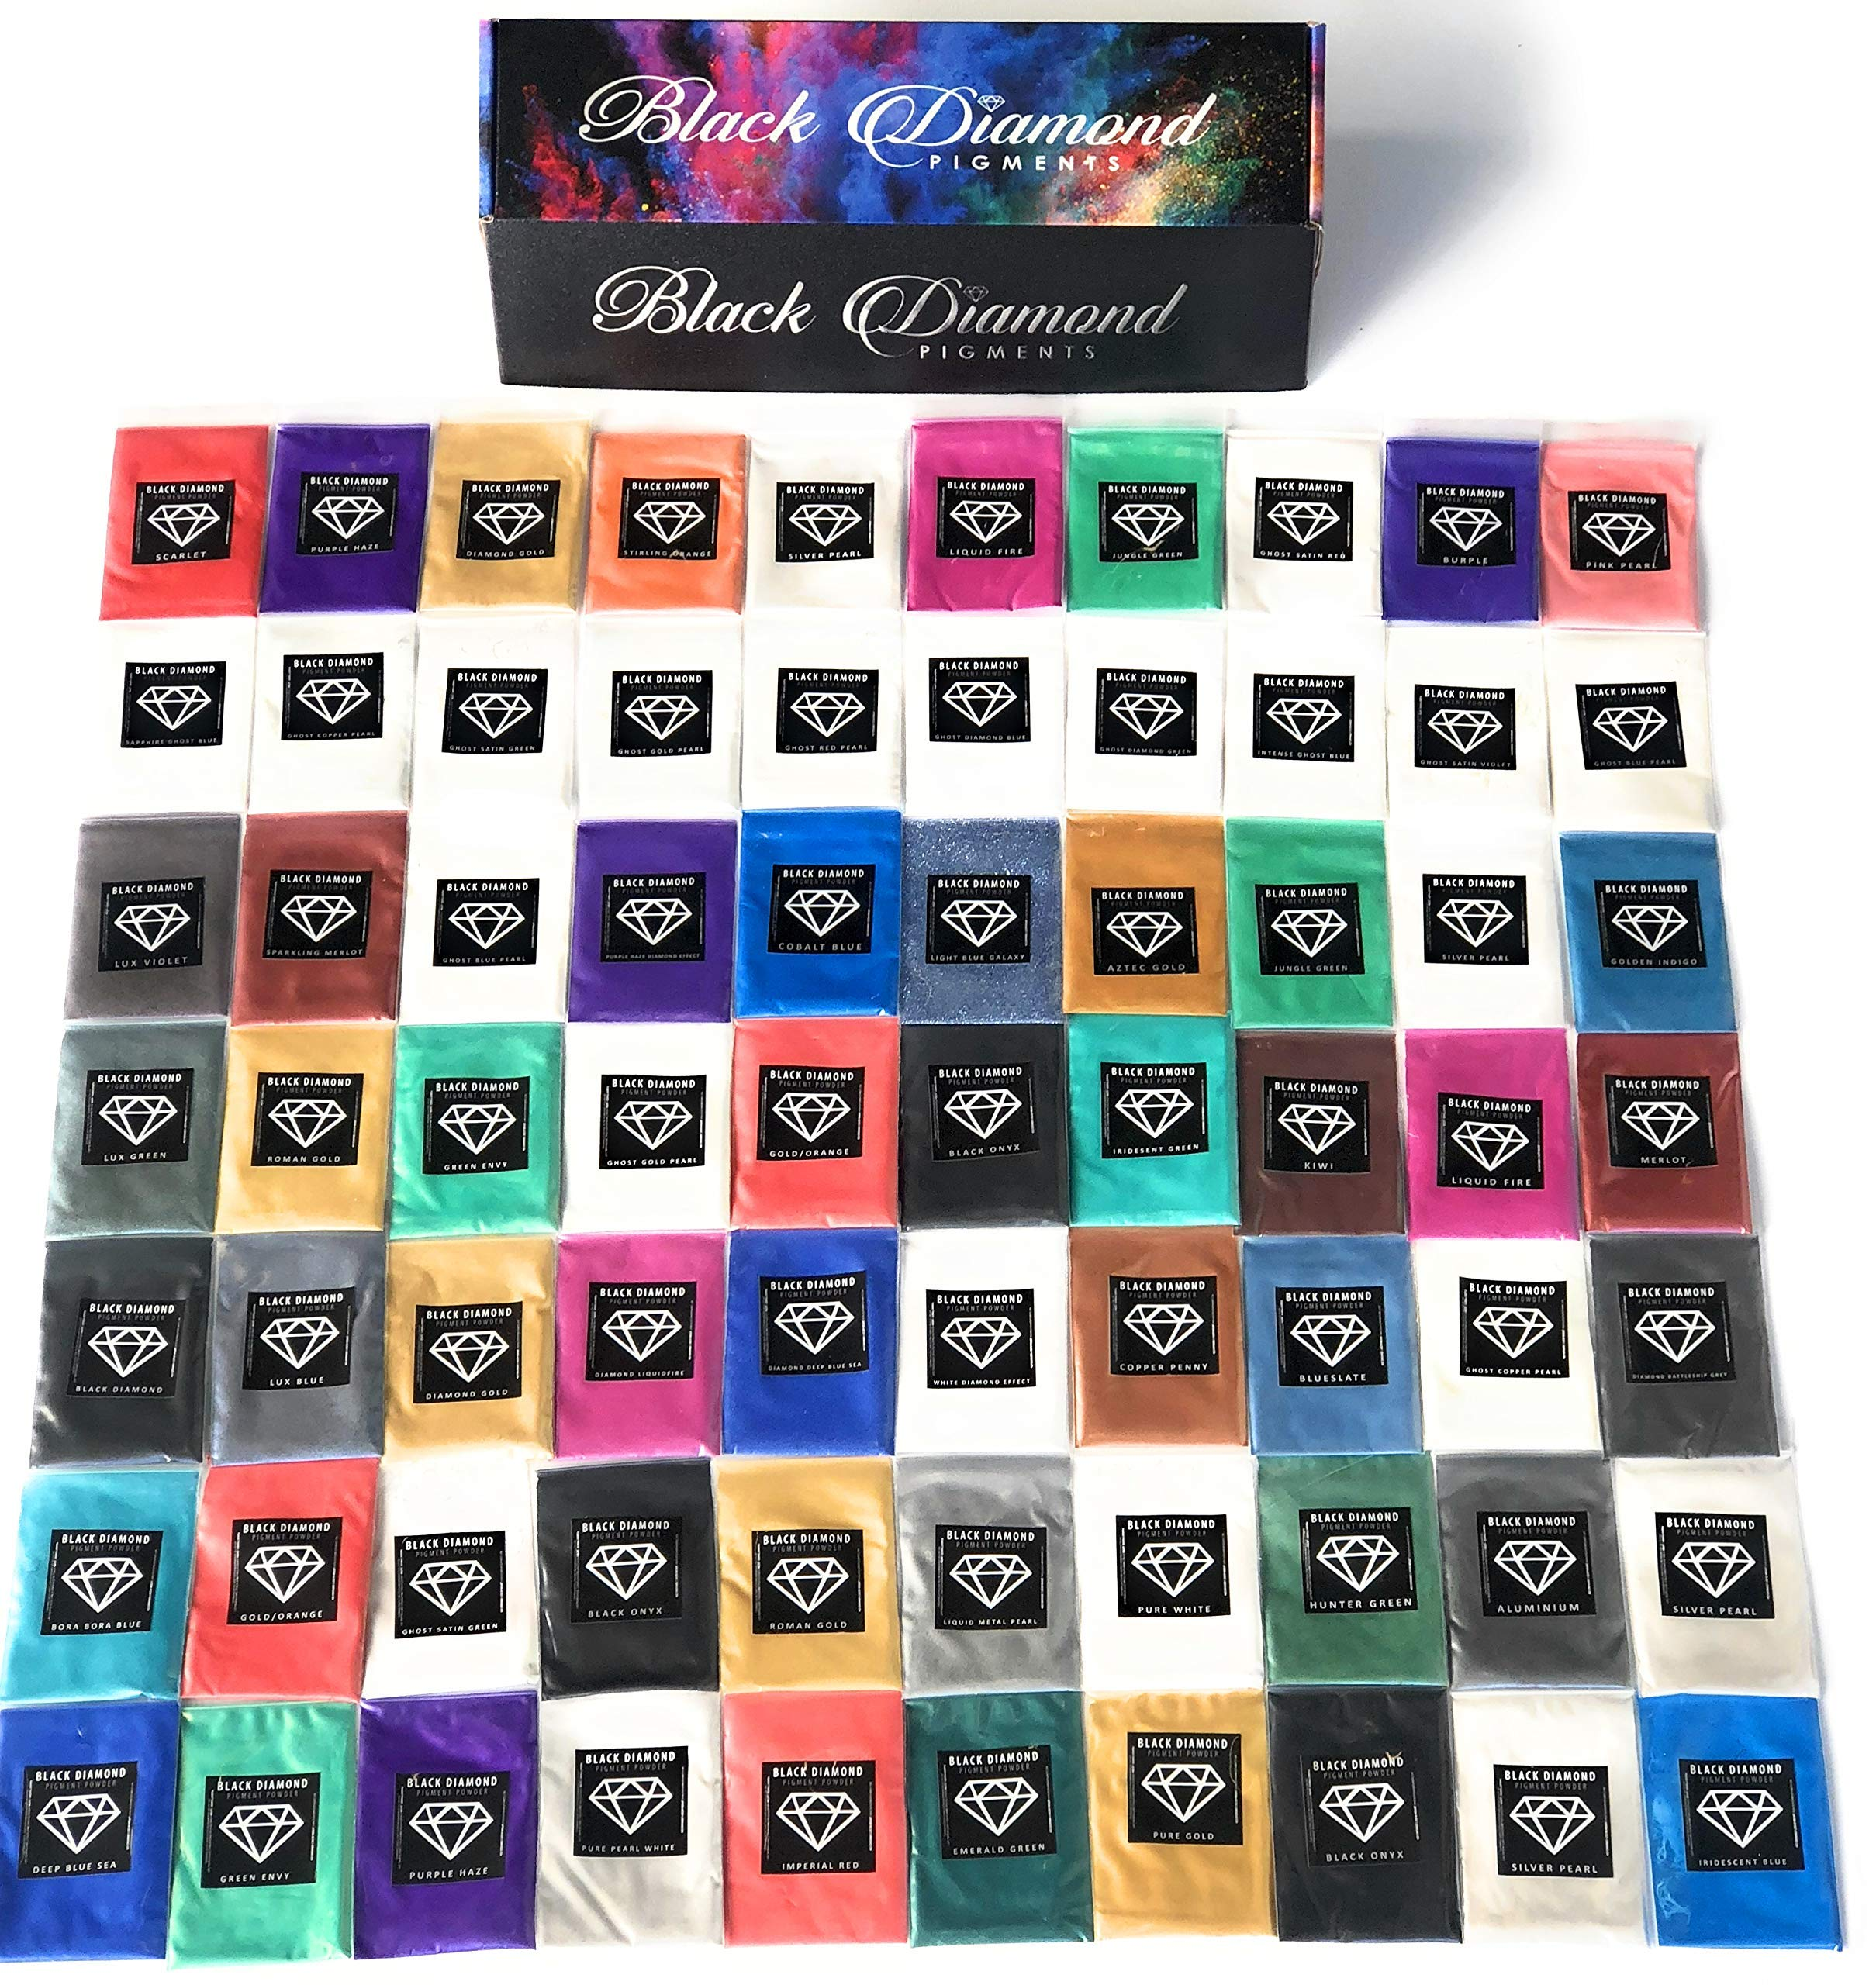 BLACK DIAMOND PIGMENTS Pigment Box Set (7 Variety Packs) 70 5g Packs Total Including Ghost pigments (Epoxy,Slime,Resin,Soap) by BLACK DIAMOND PIGMENTS (Image #1)